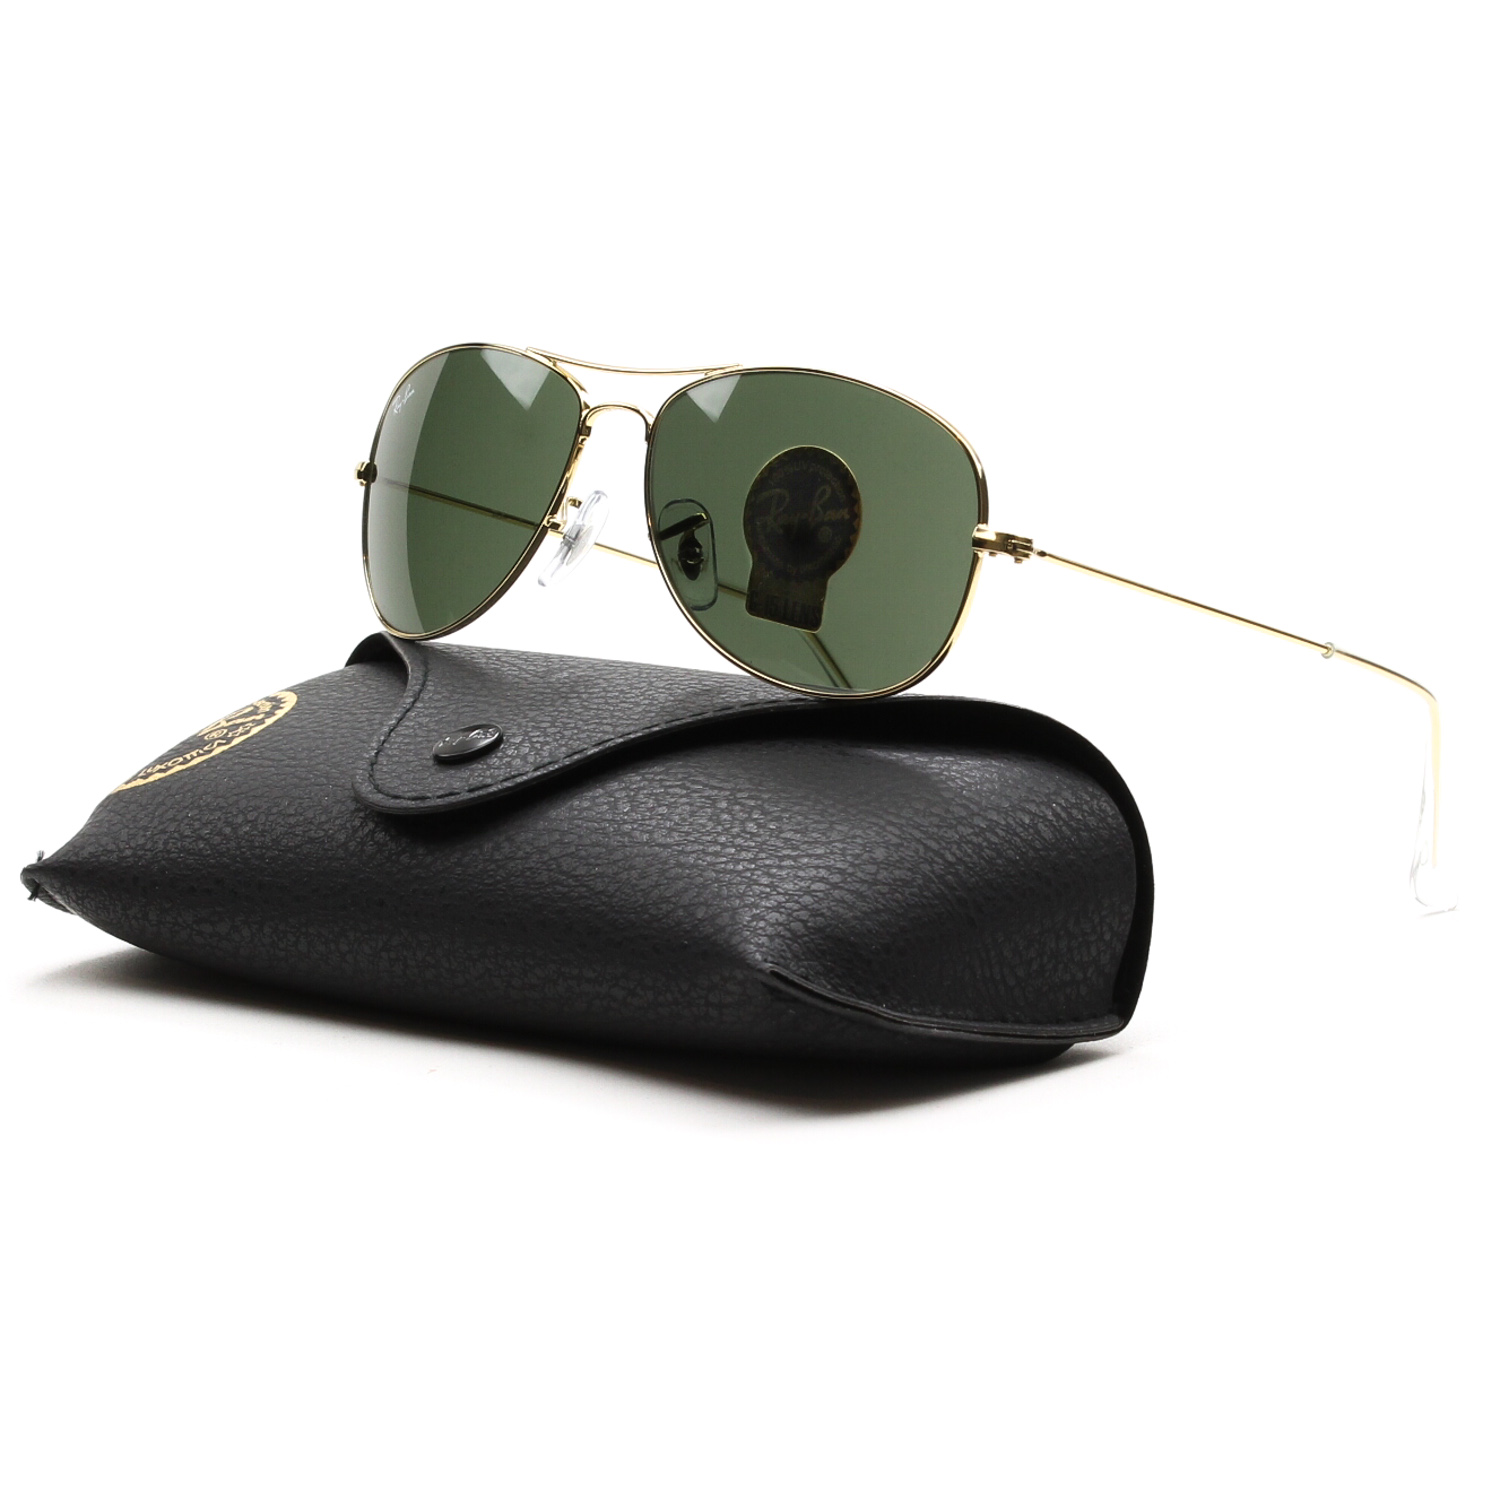 Ray Ban Cockpit Aviator Sunglasses RB 3362 001 Gold, Grey G15 Lens 56 mm. main image